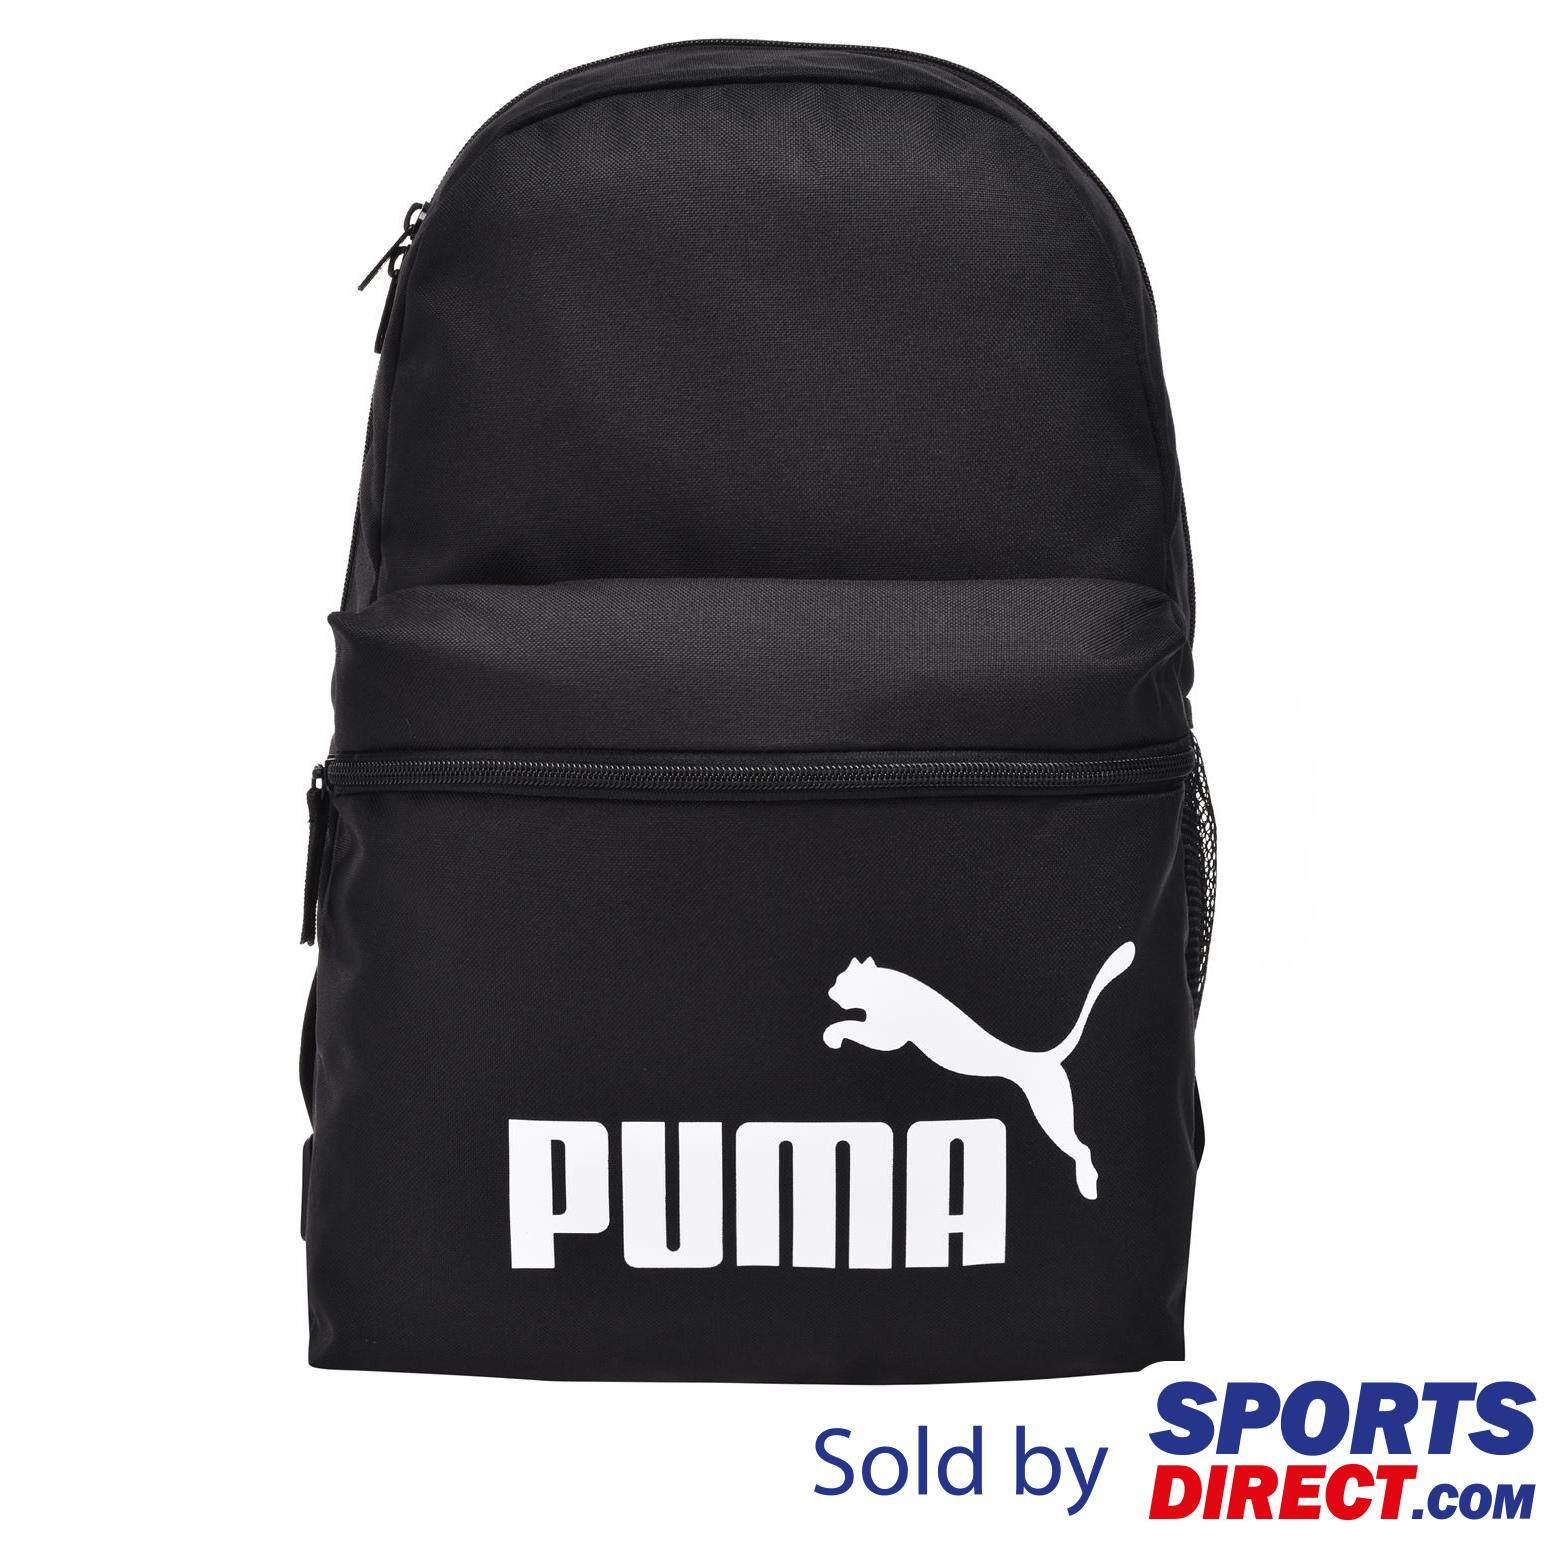 Puma Products With Best Online Price At Lazada Malaysia 0deb15354b